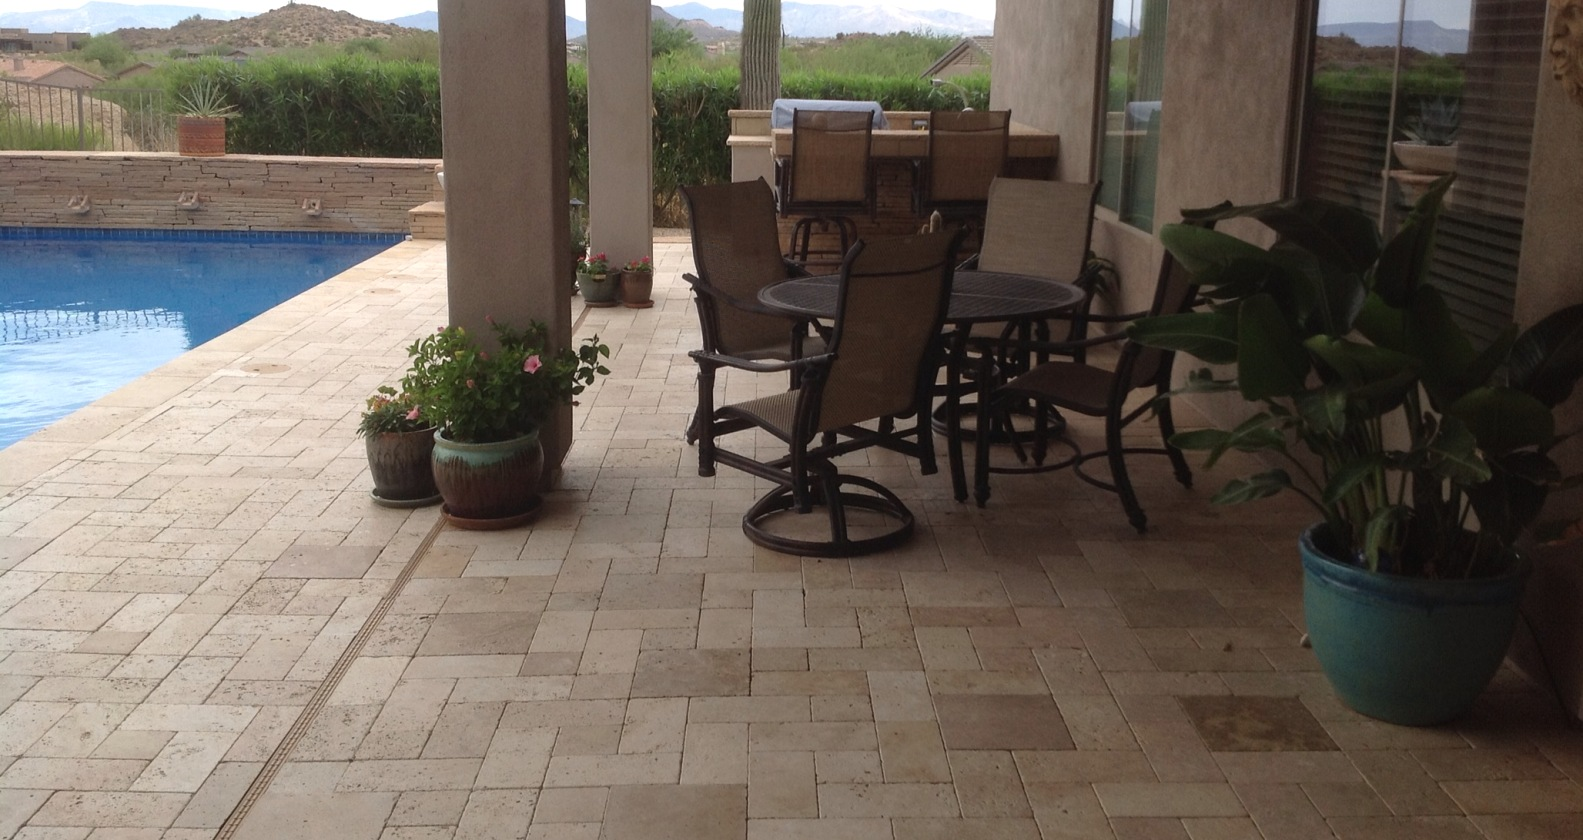 6 Reasons A Travertine Pool Deck Is